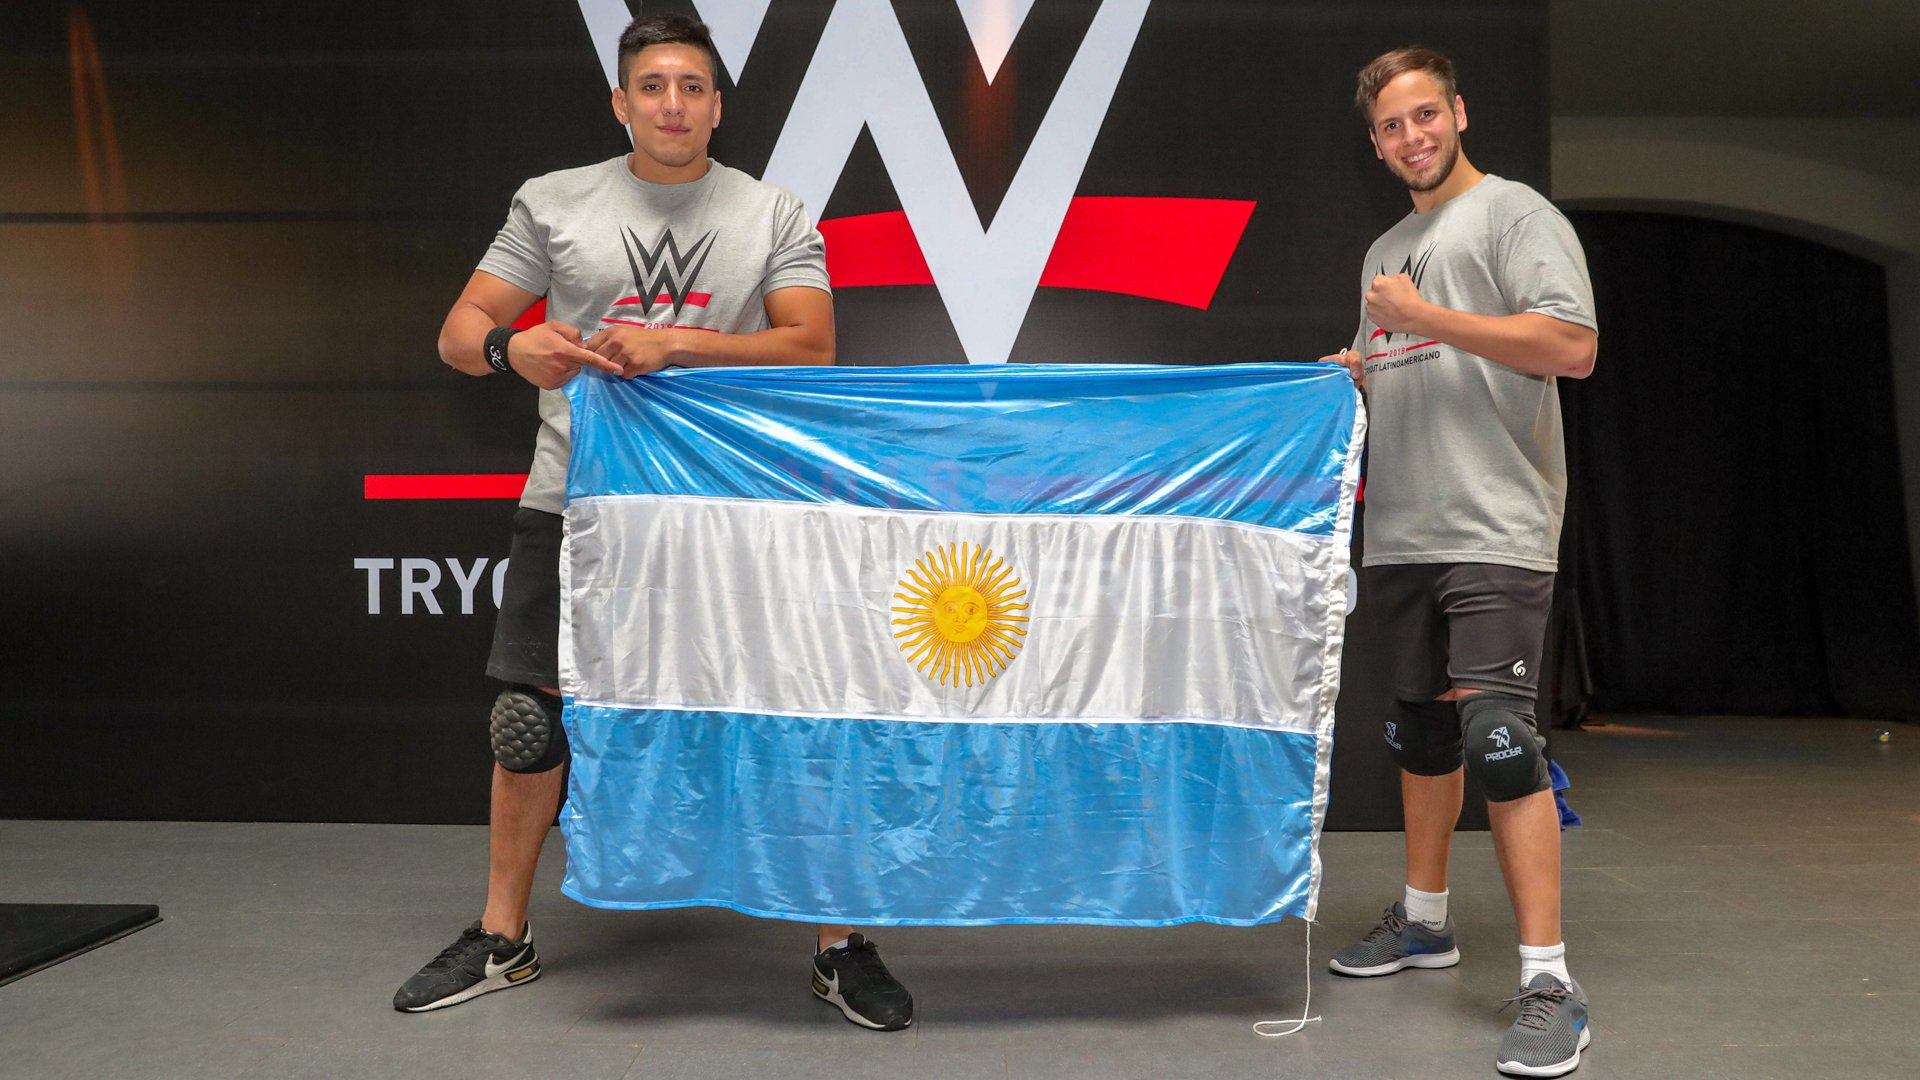 Argentina, the home country of one of WWE's most popular Superstars of all time in Antonino Rocca, has two athletes at the camp, Juan Salvatierra and Matias Dragonetti. They wrestle under the aliases of Django and Benjamin Stolo, respectively.